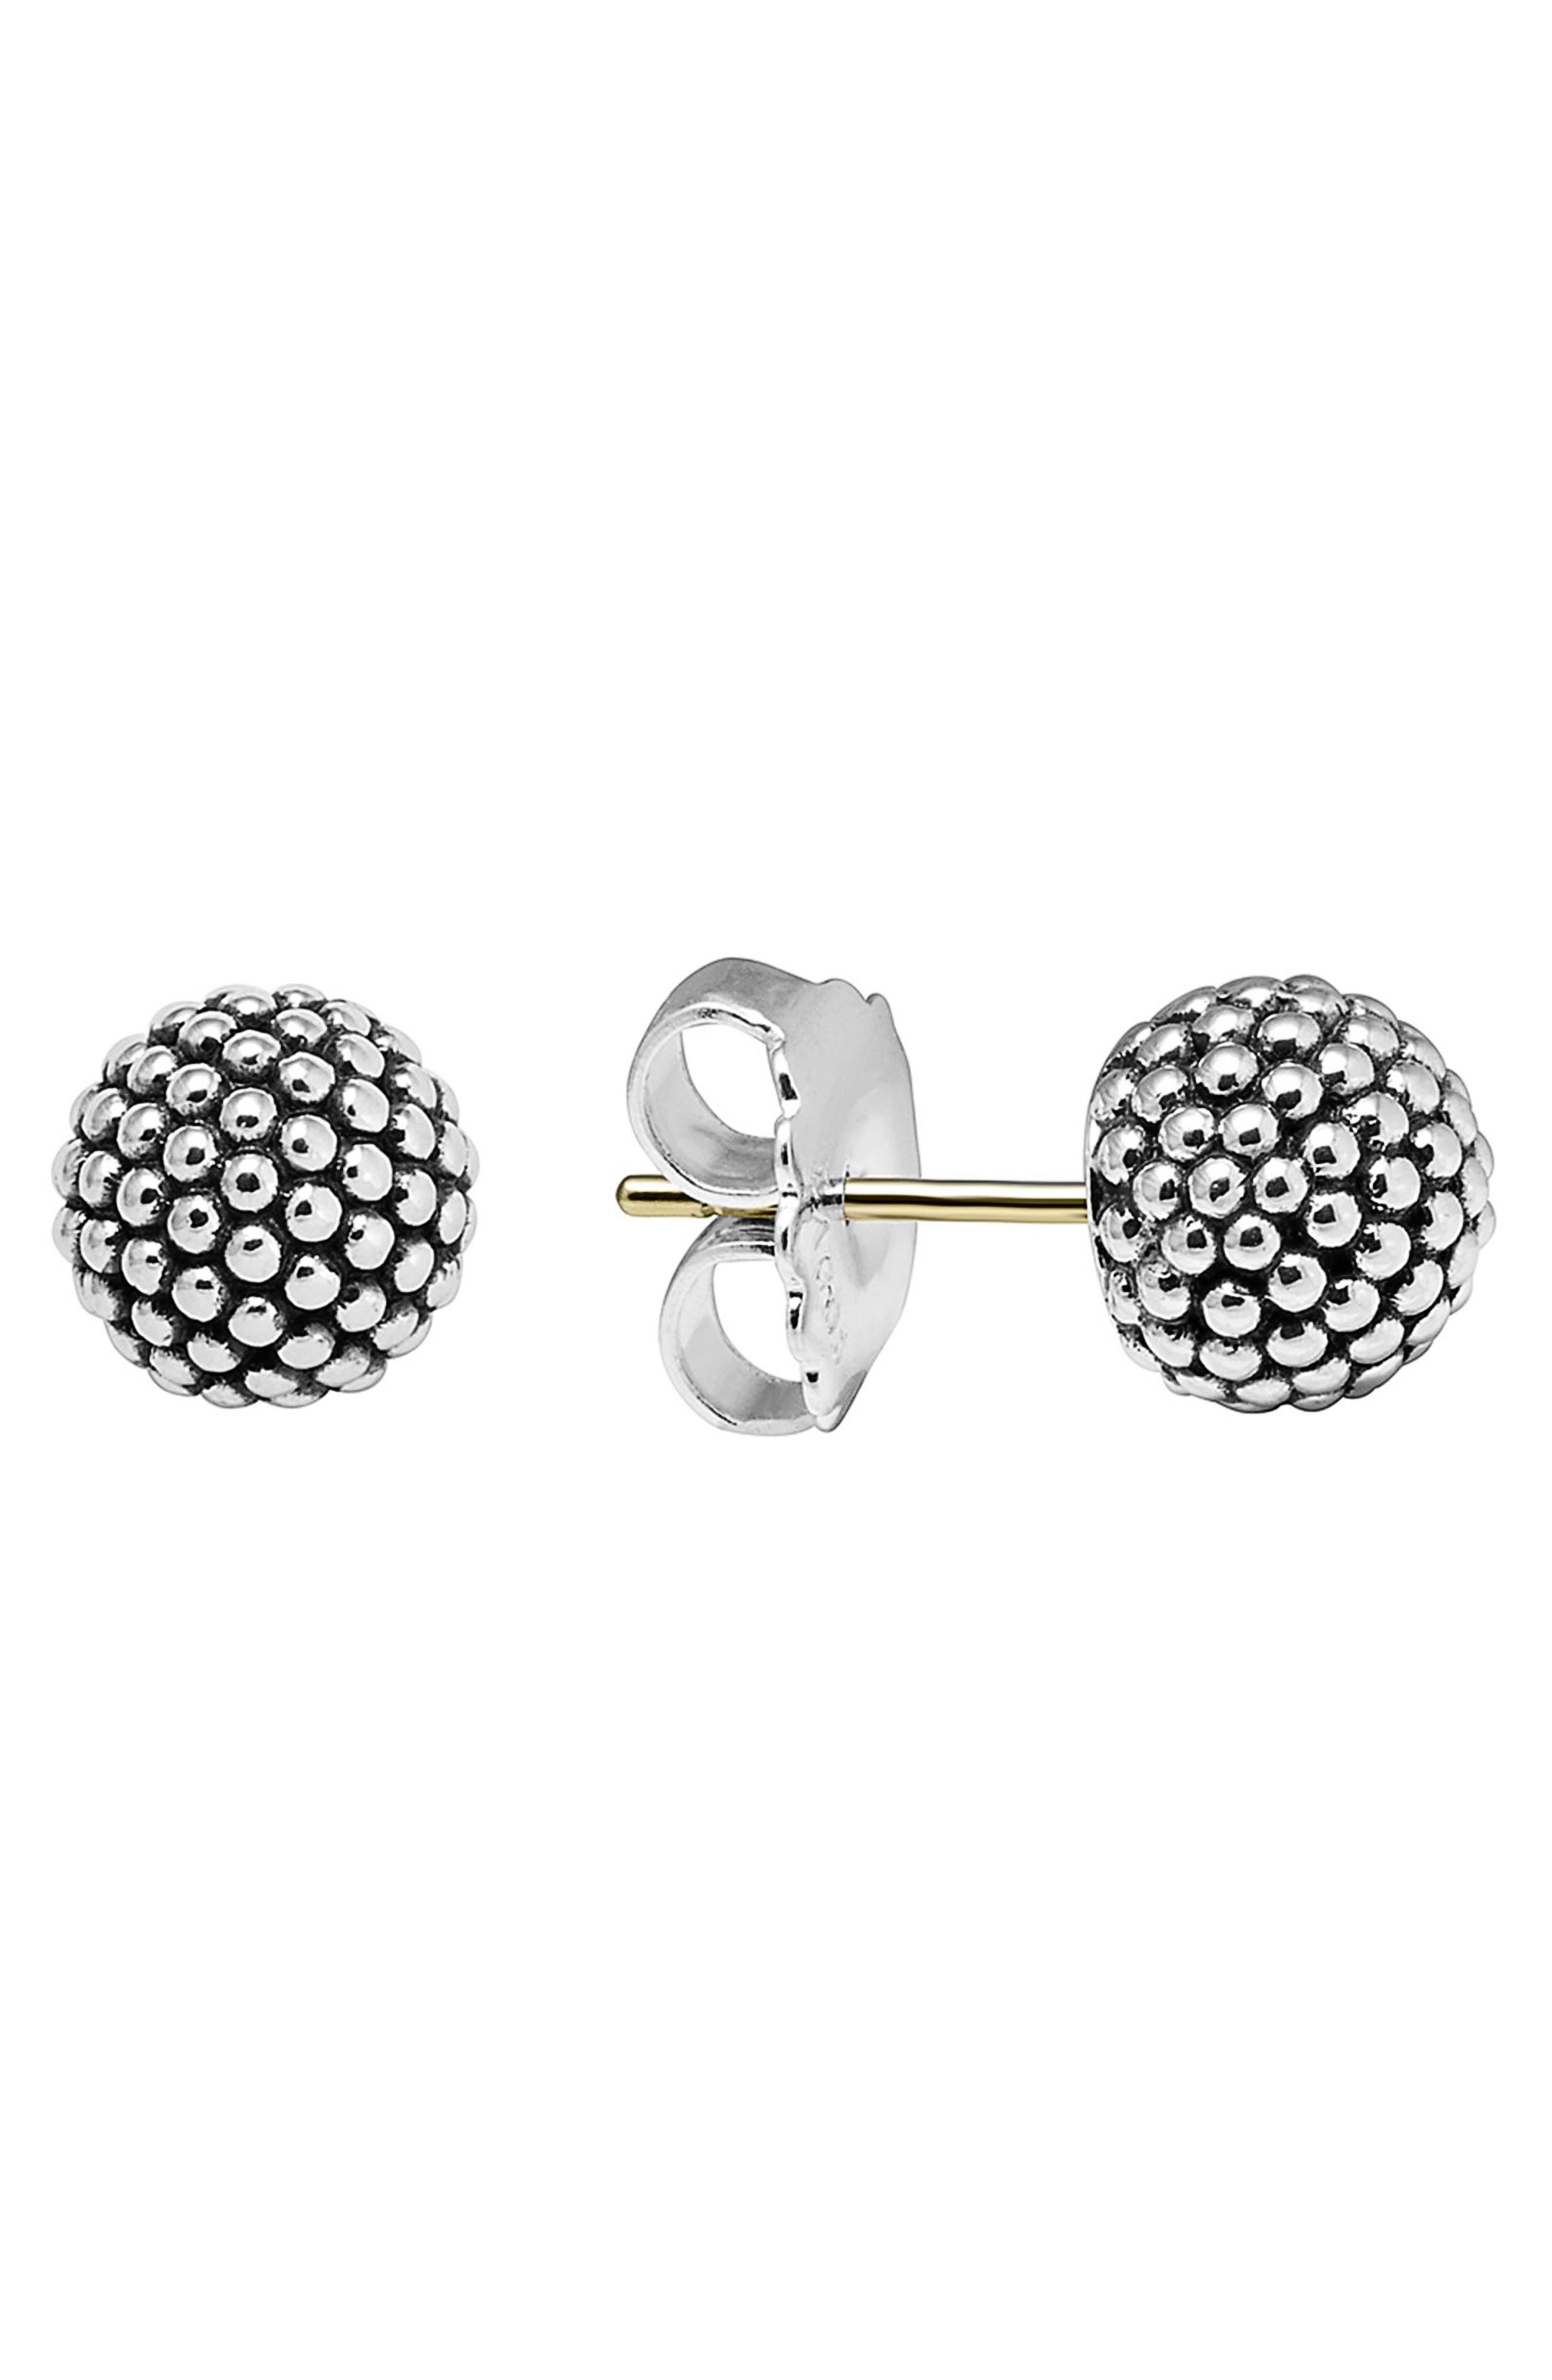 LAGOS 'Columbus Circle' Ball Stud Earrings